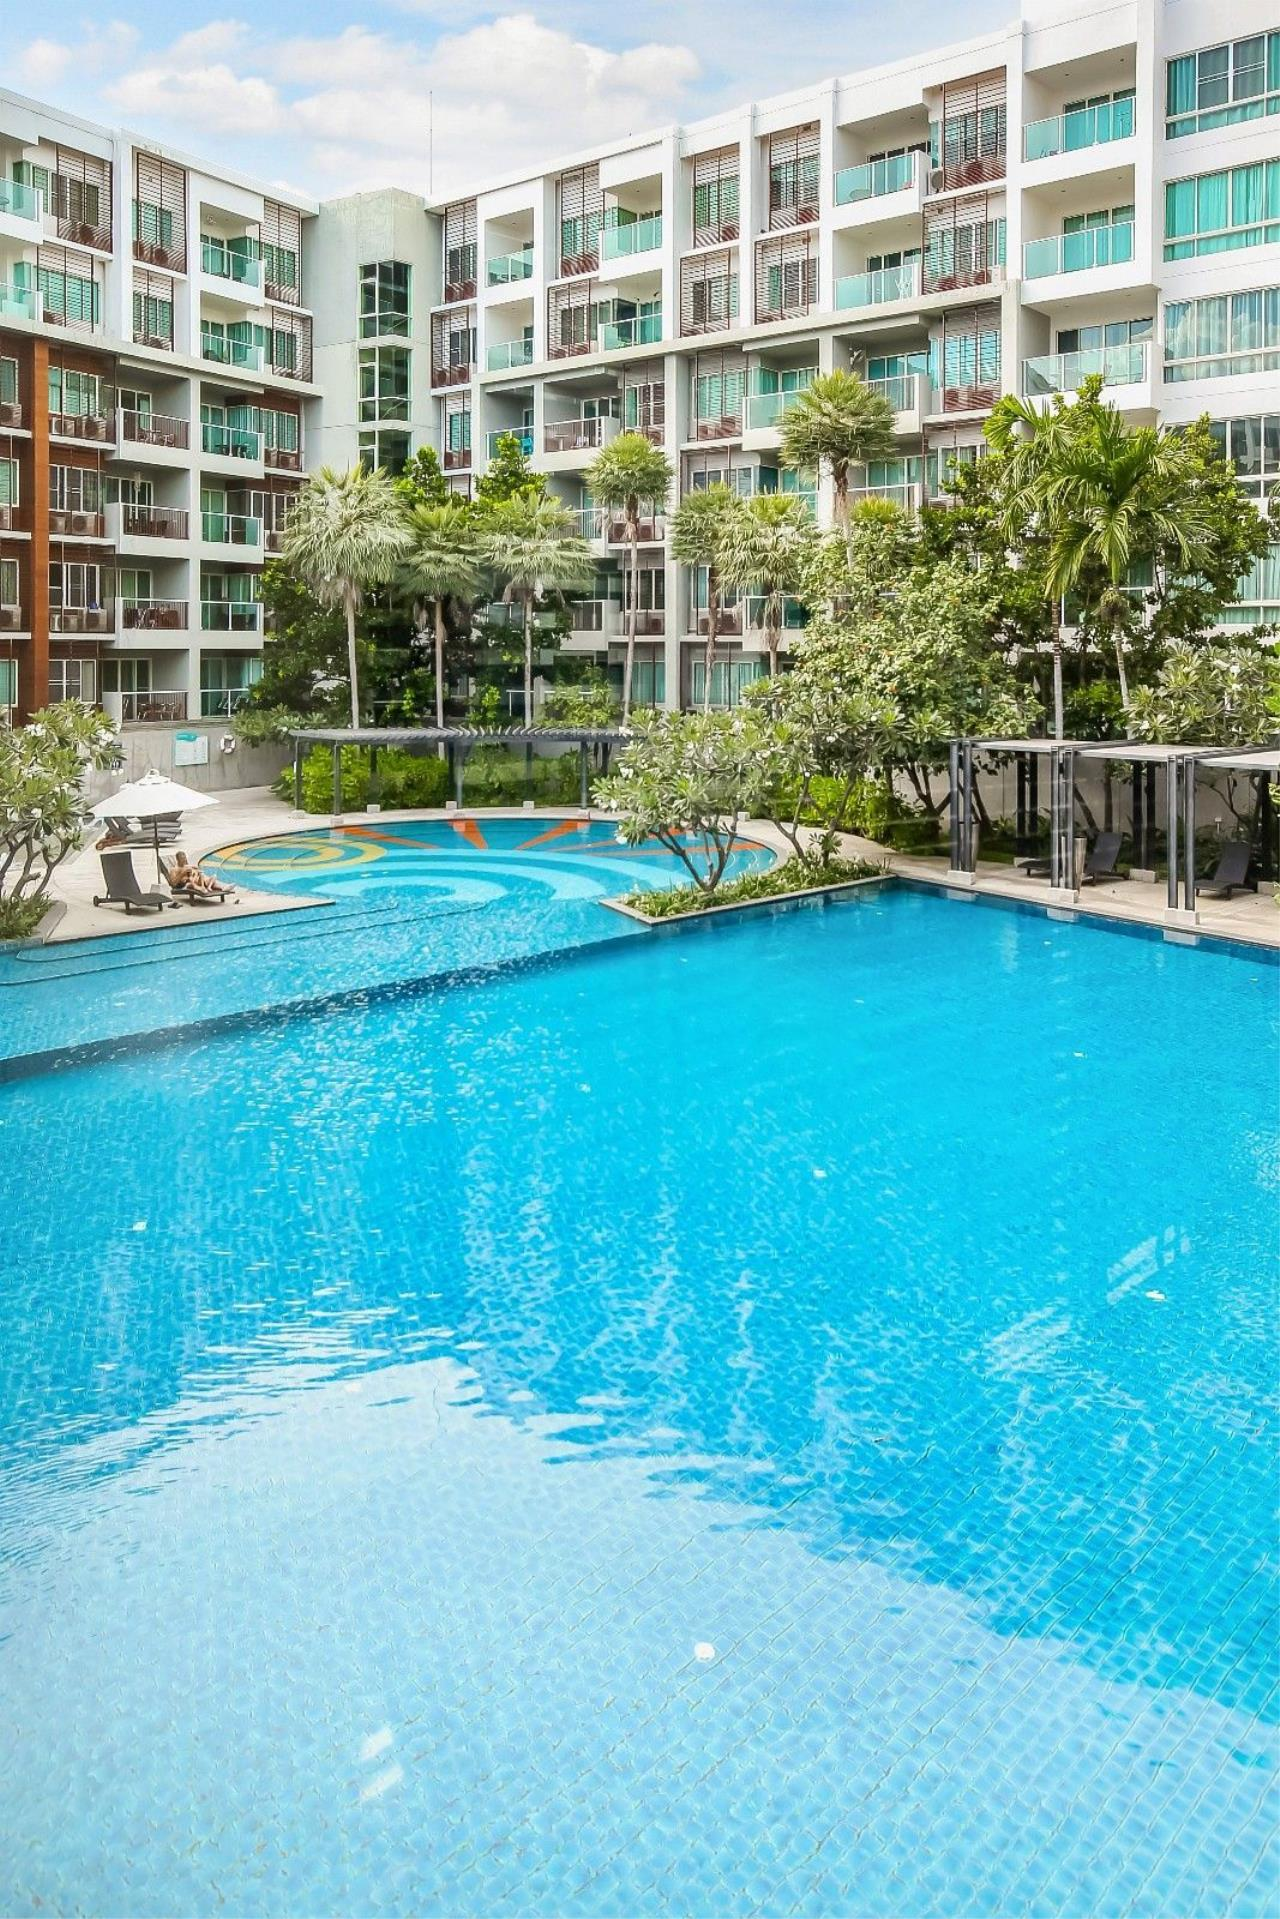 Thaiproperty1 Agency's 2 bedroom condo close to the beach 26